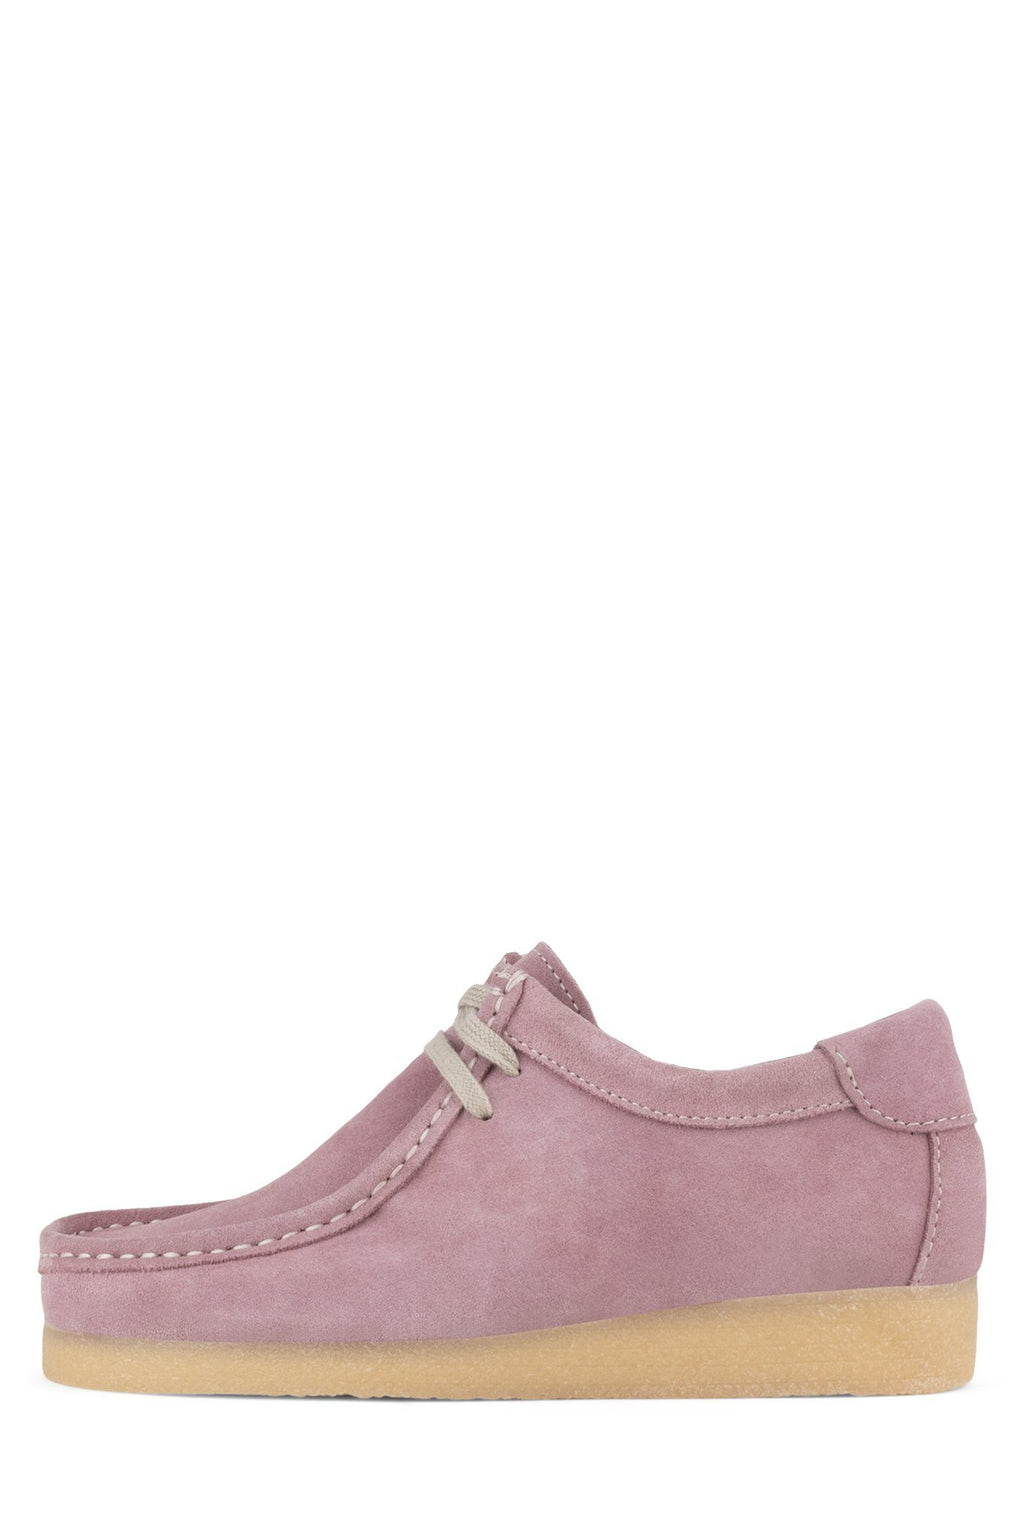 HUSKY Boot Jeffrey Campbell Dusty Pink Suede 34